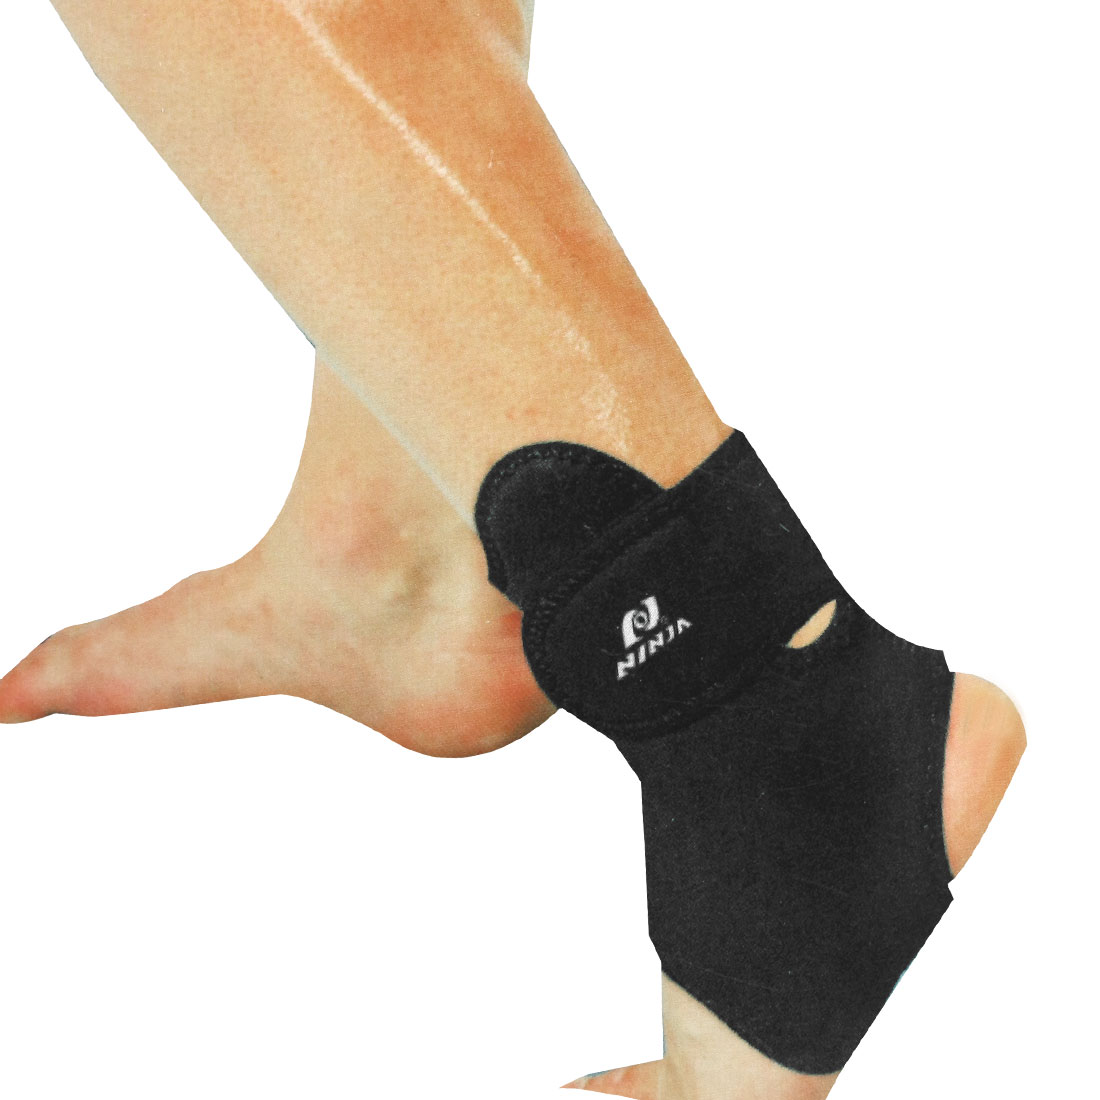 Gym Exercise Black Neoprene Stretchy Guard Ankle Support Brace for Man